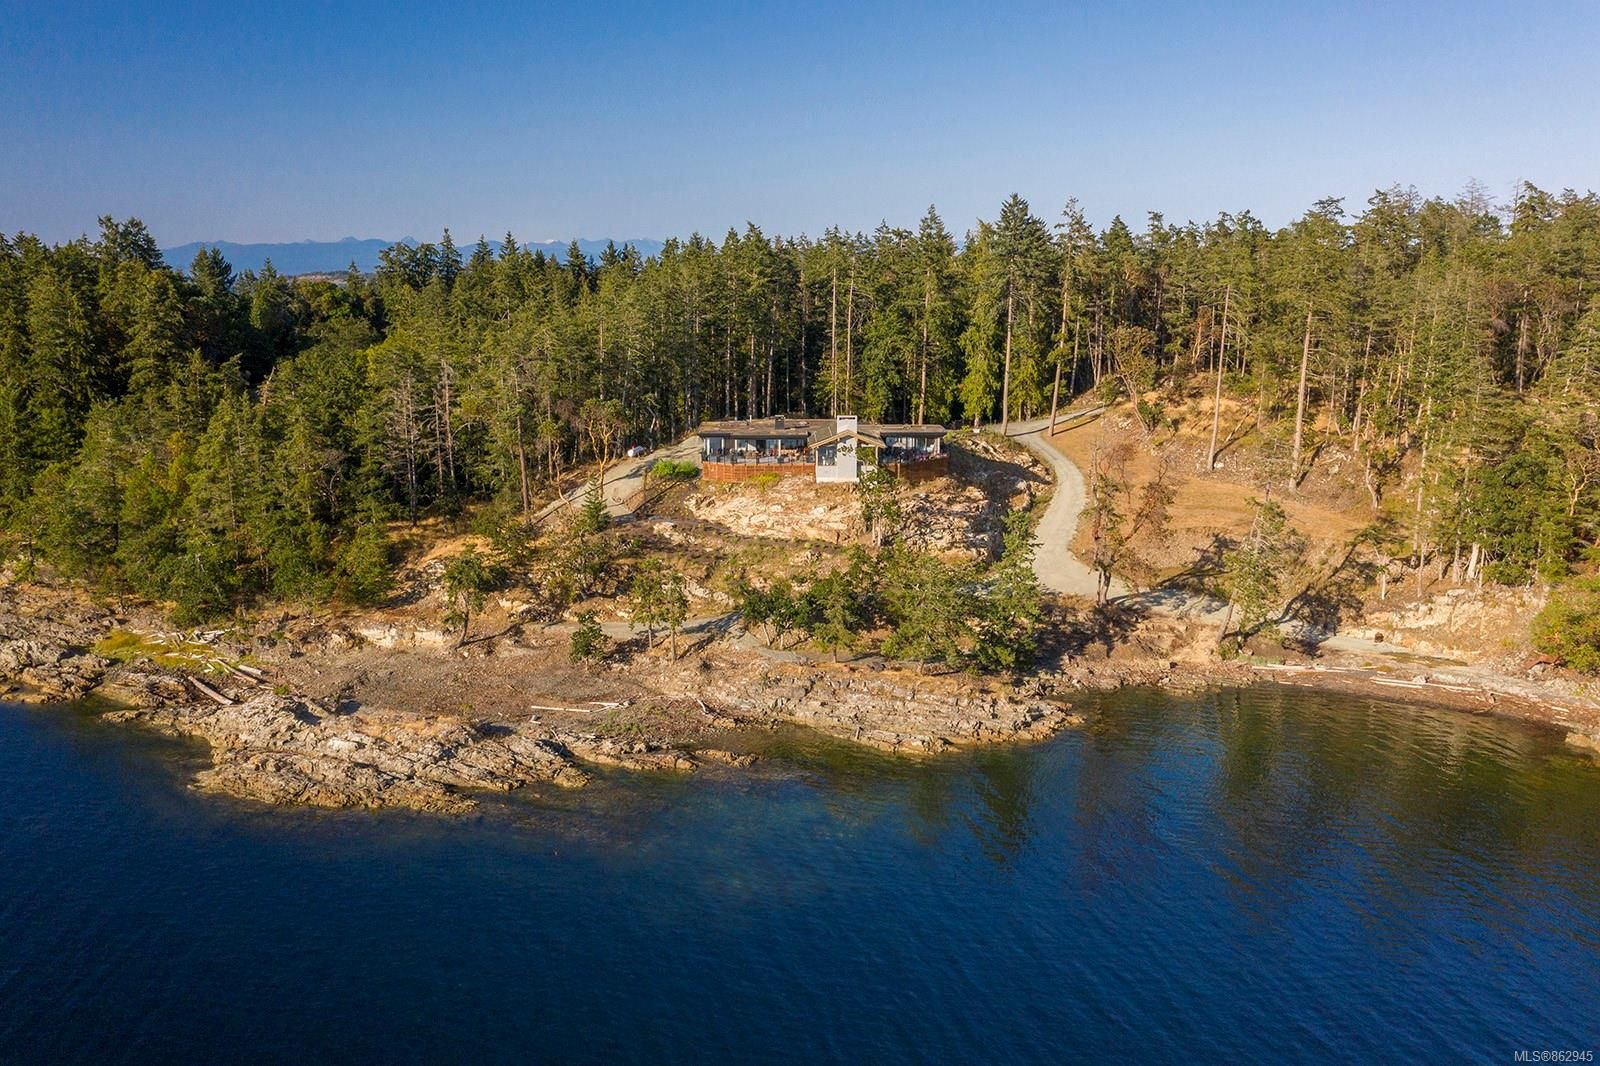 Photo 16: Photos: 1675 Claudet Rd in : PQ Nanoose House for sale (Parksville/Qualicum)  : MLS®# 862945